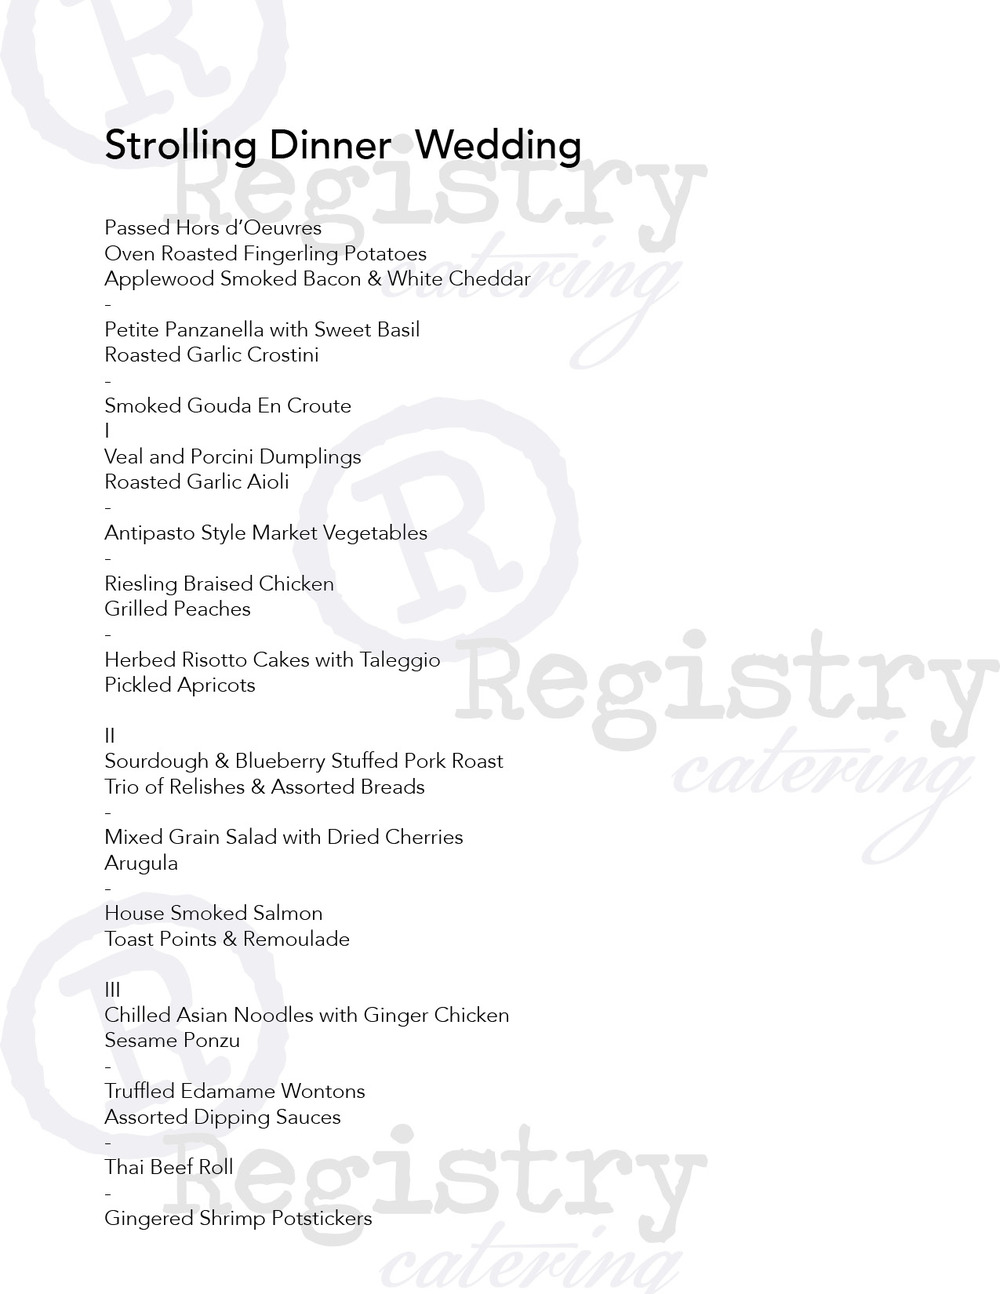 Sample Menus4.jpg